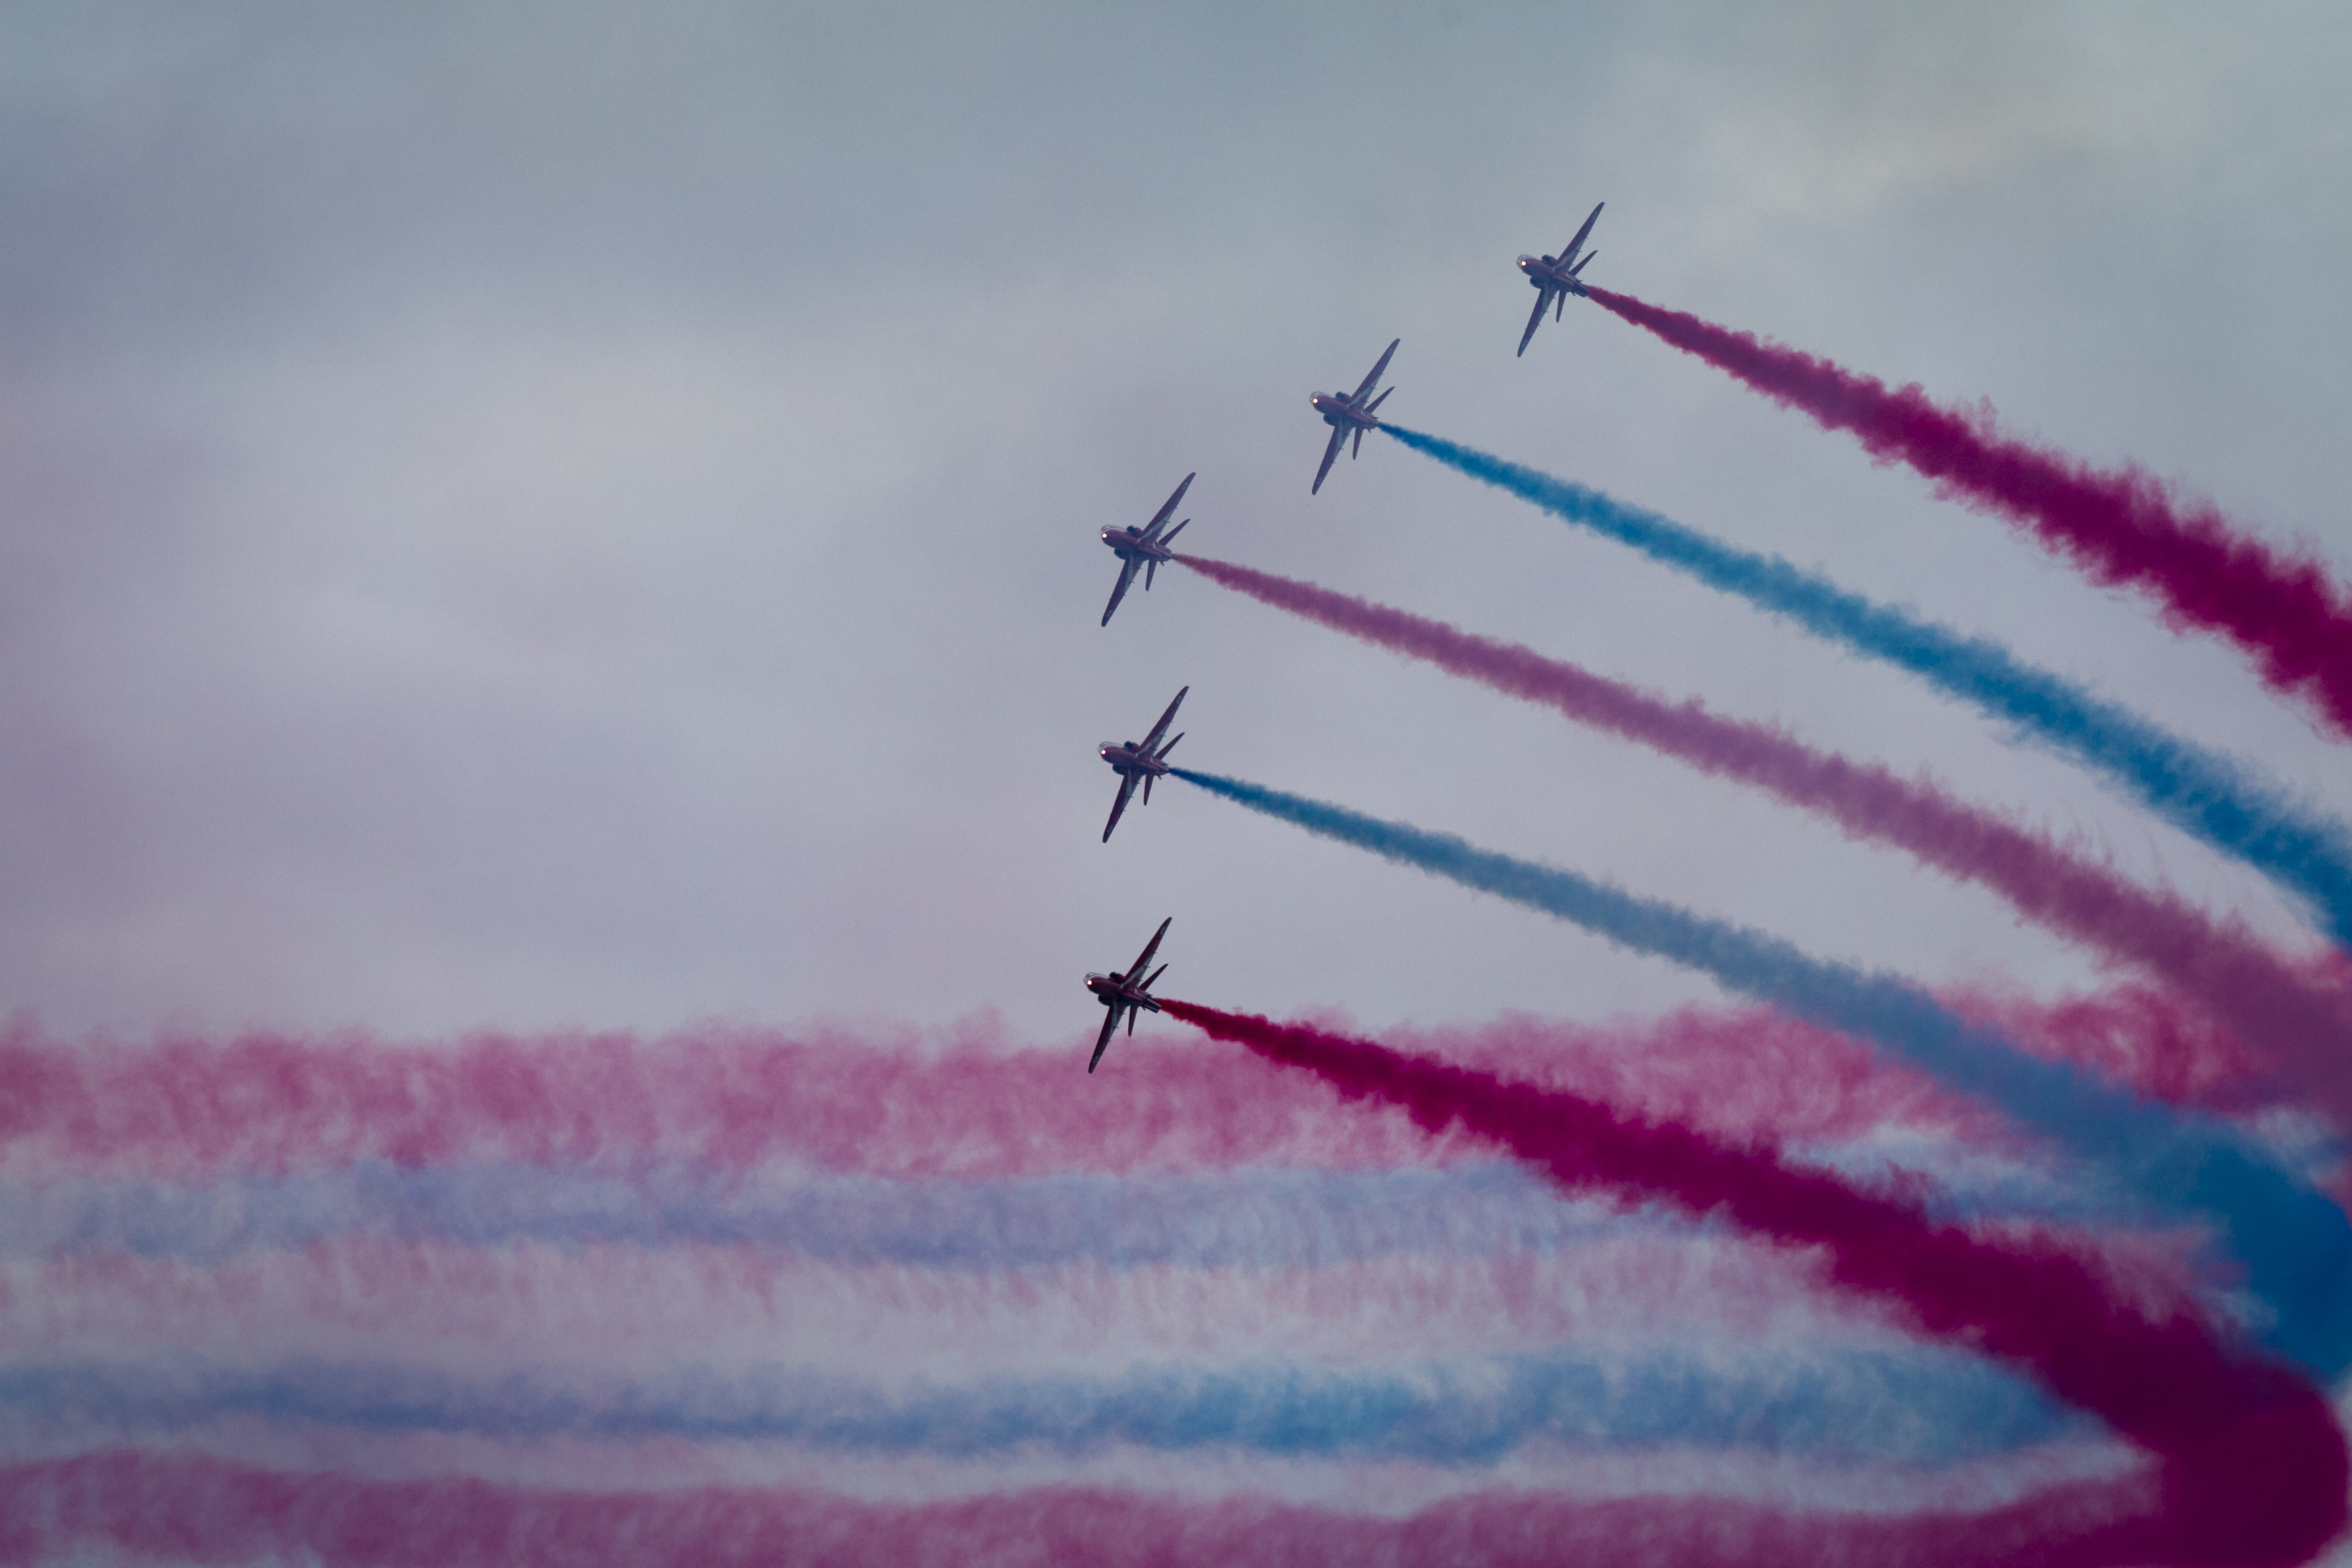 Red Arrows soar above Ayr (Andrew Cawley / DC Thomson)